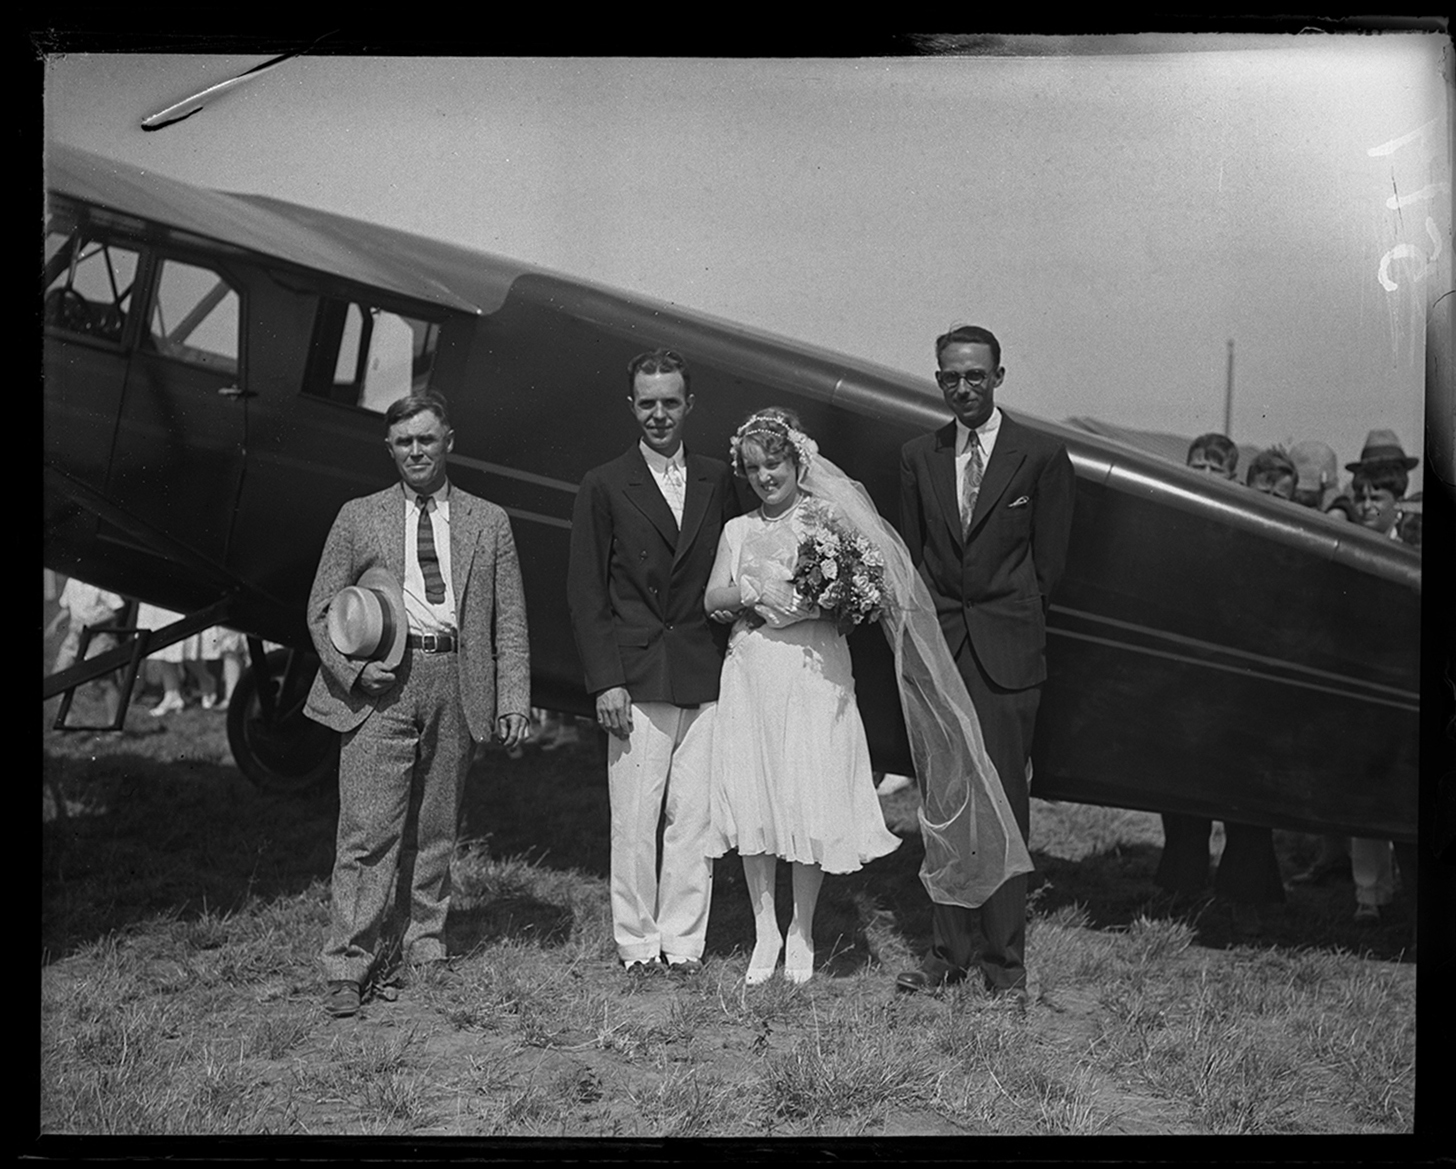 Wilson Briegel and Marian Robertson were married in an airplane, August 2, 1930. The Rev. Lewis Fisher, left, conducted the ceremony. Mrs. Briegel, mother of the groom, rode along and the pilot was Craig Isbell, right, at Southwest Airport.  File/The State Journal-Register